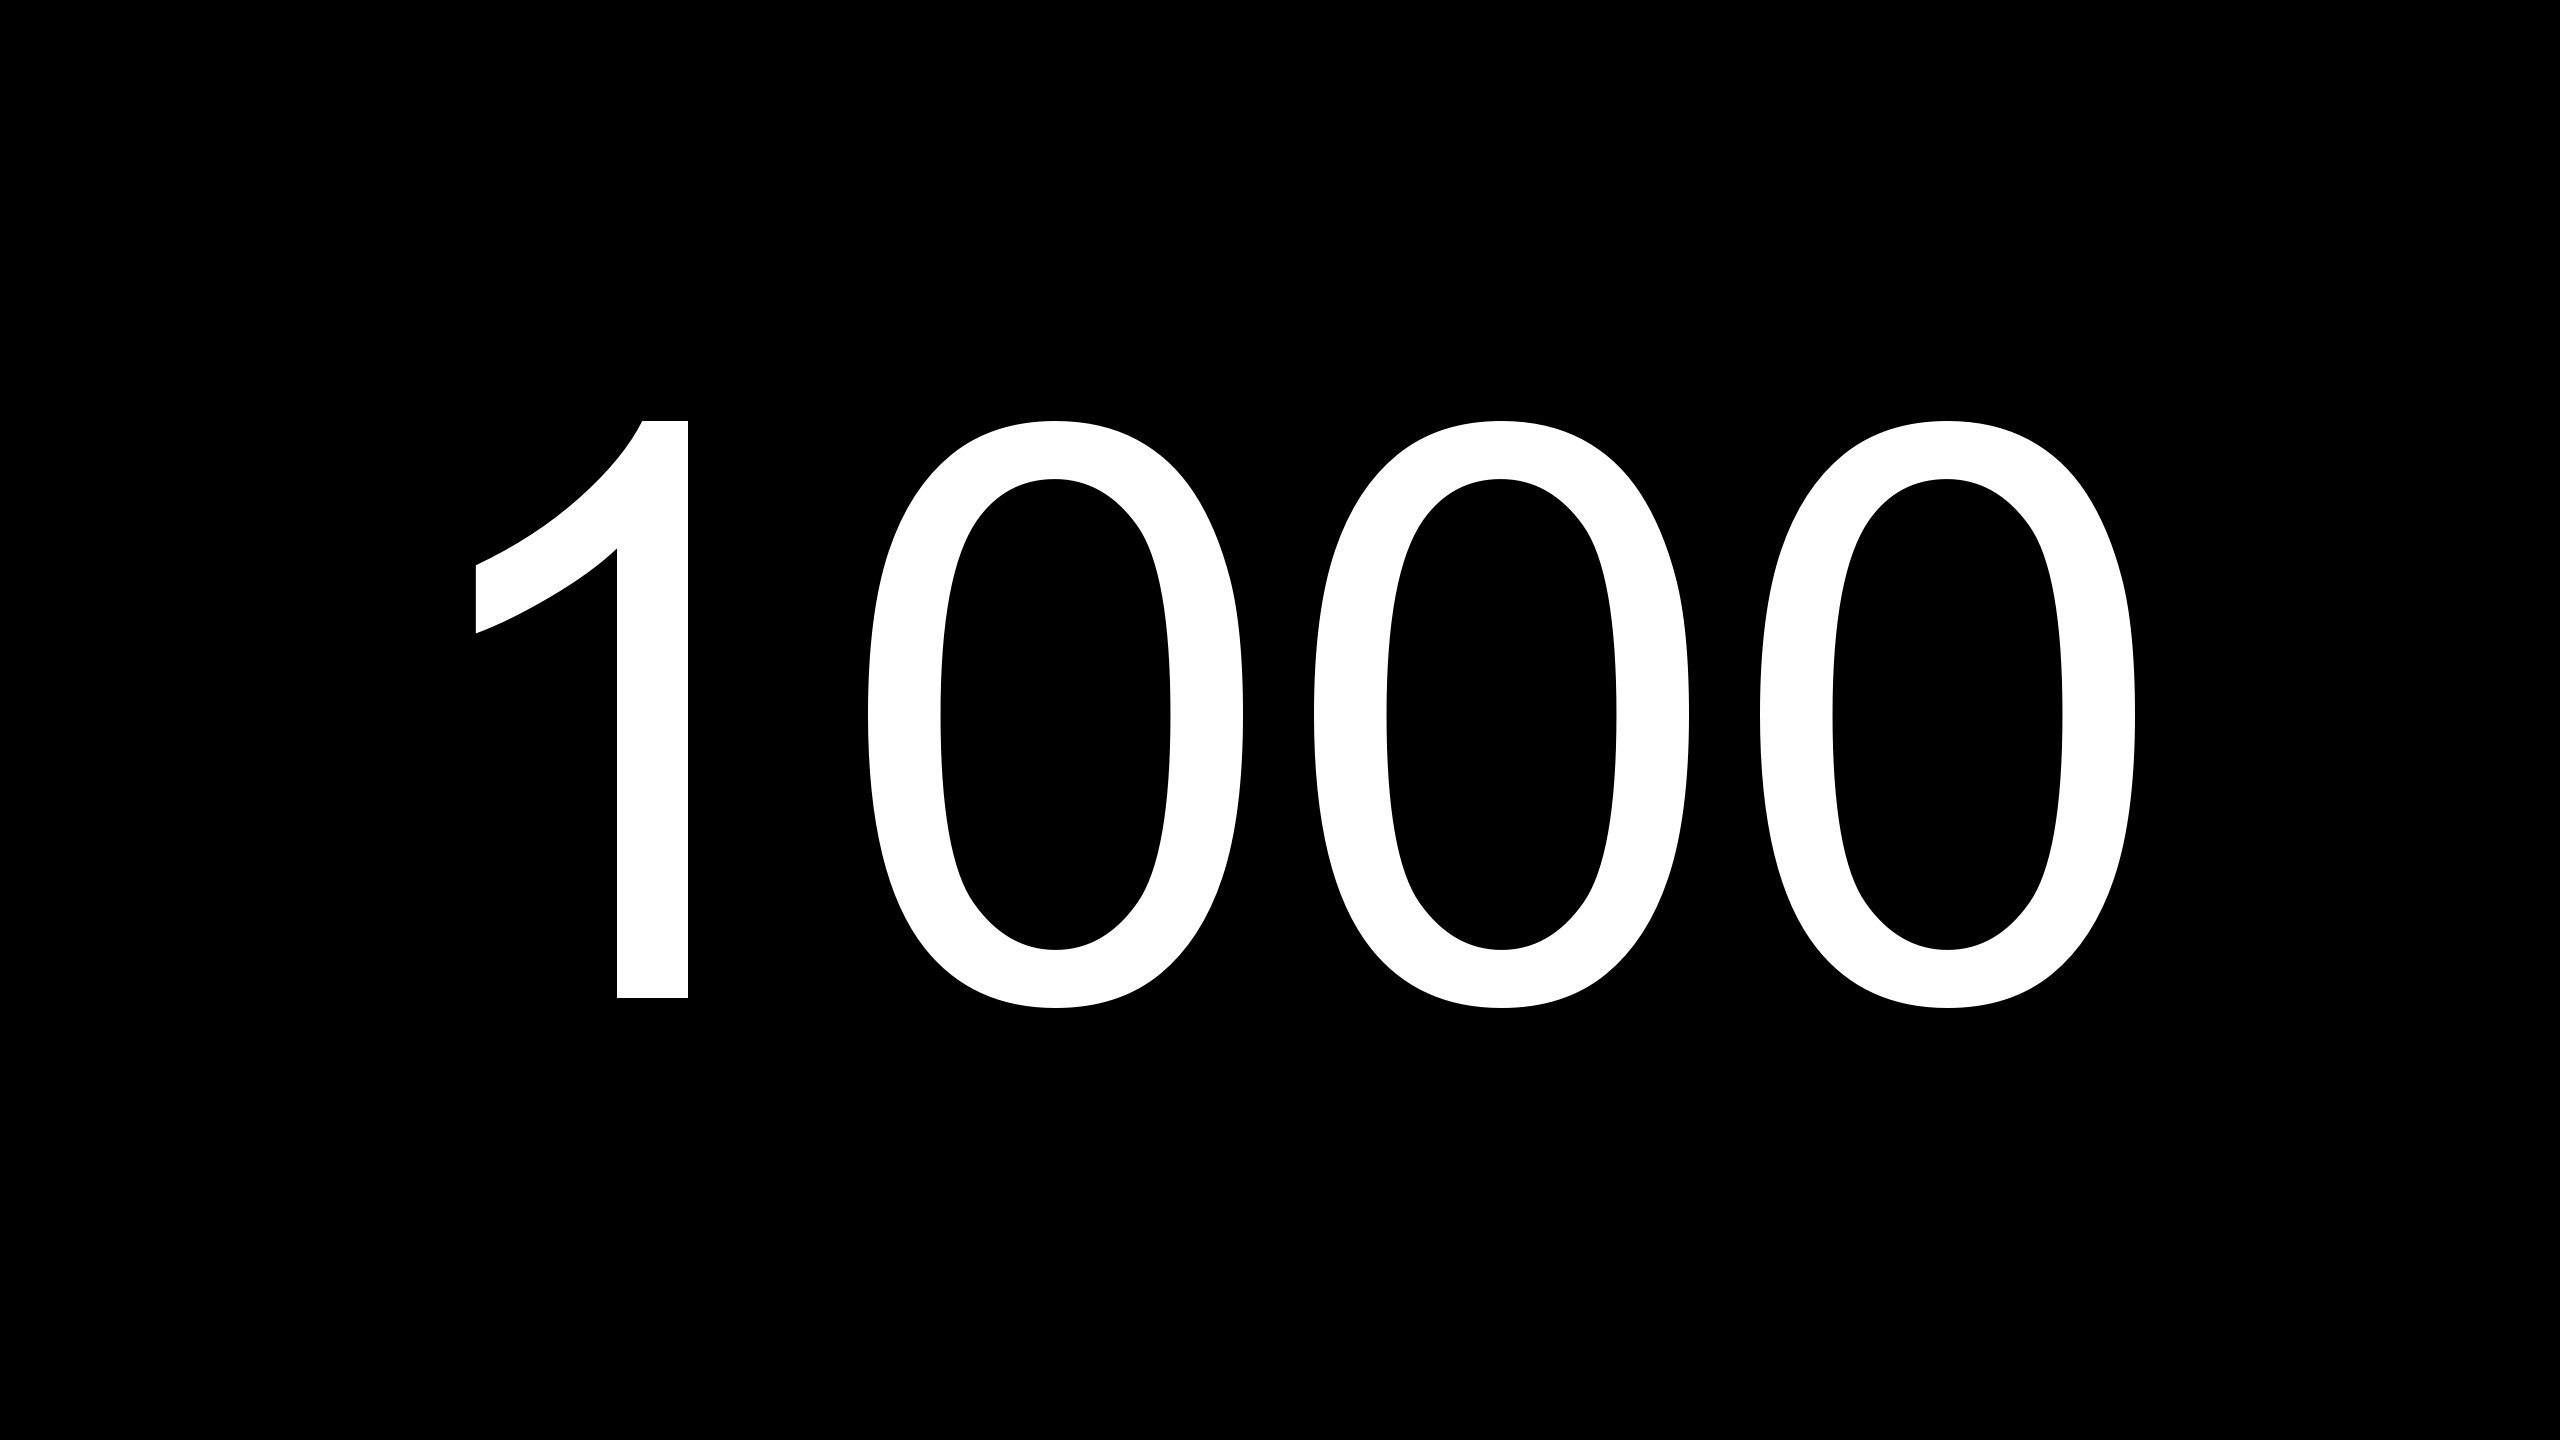 1000 Straight Days of Completing 2 or More Miles